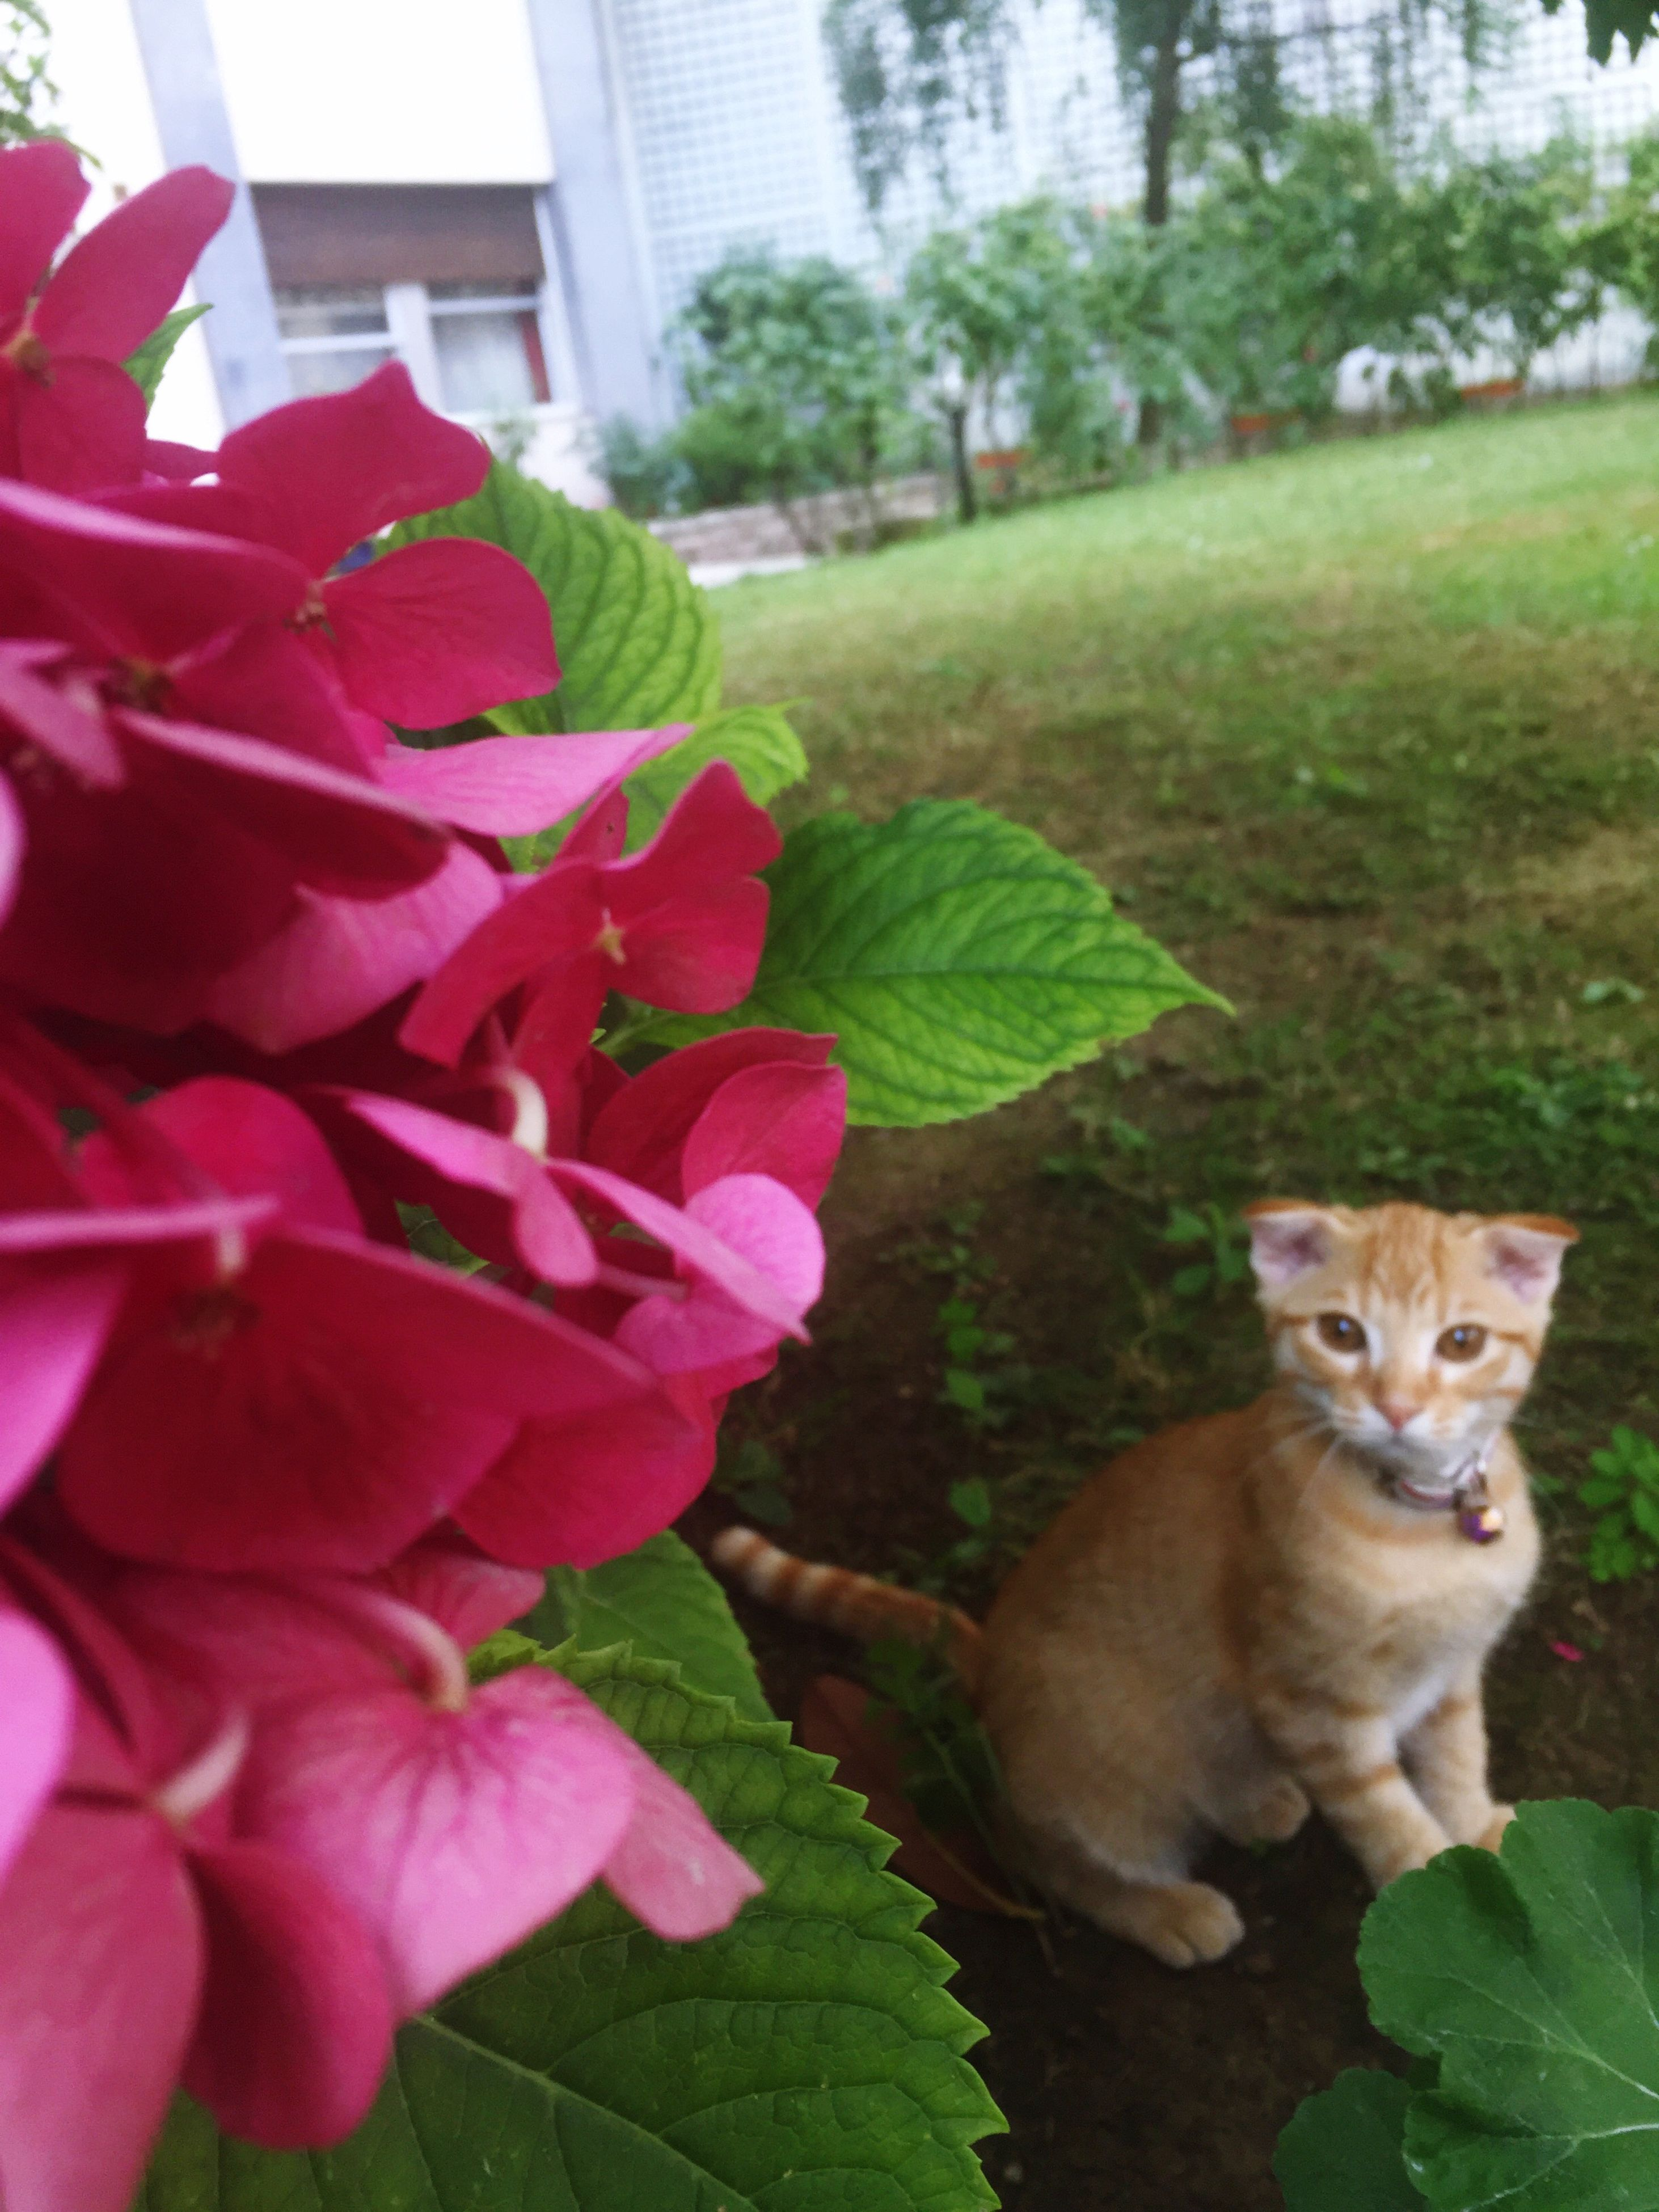 domestic cat, animal themes, one animal, pets, feline, domestic animals, mammal, leaf, plant, looking at camera, portrait, no people, growth, day, outdoors, flower, nature, sitting, close-up